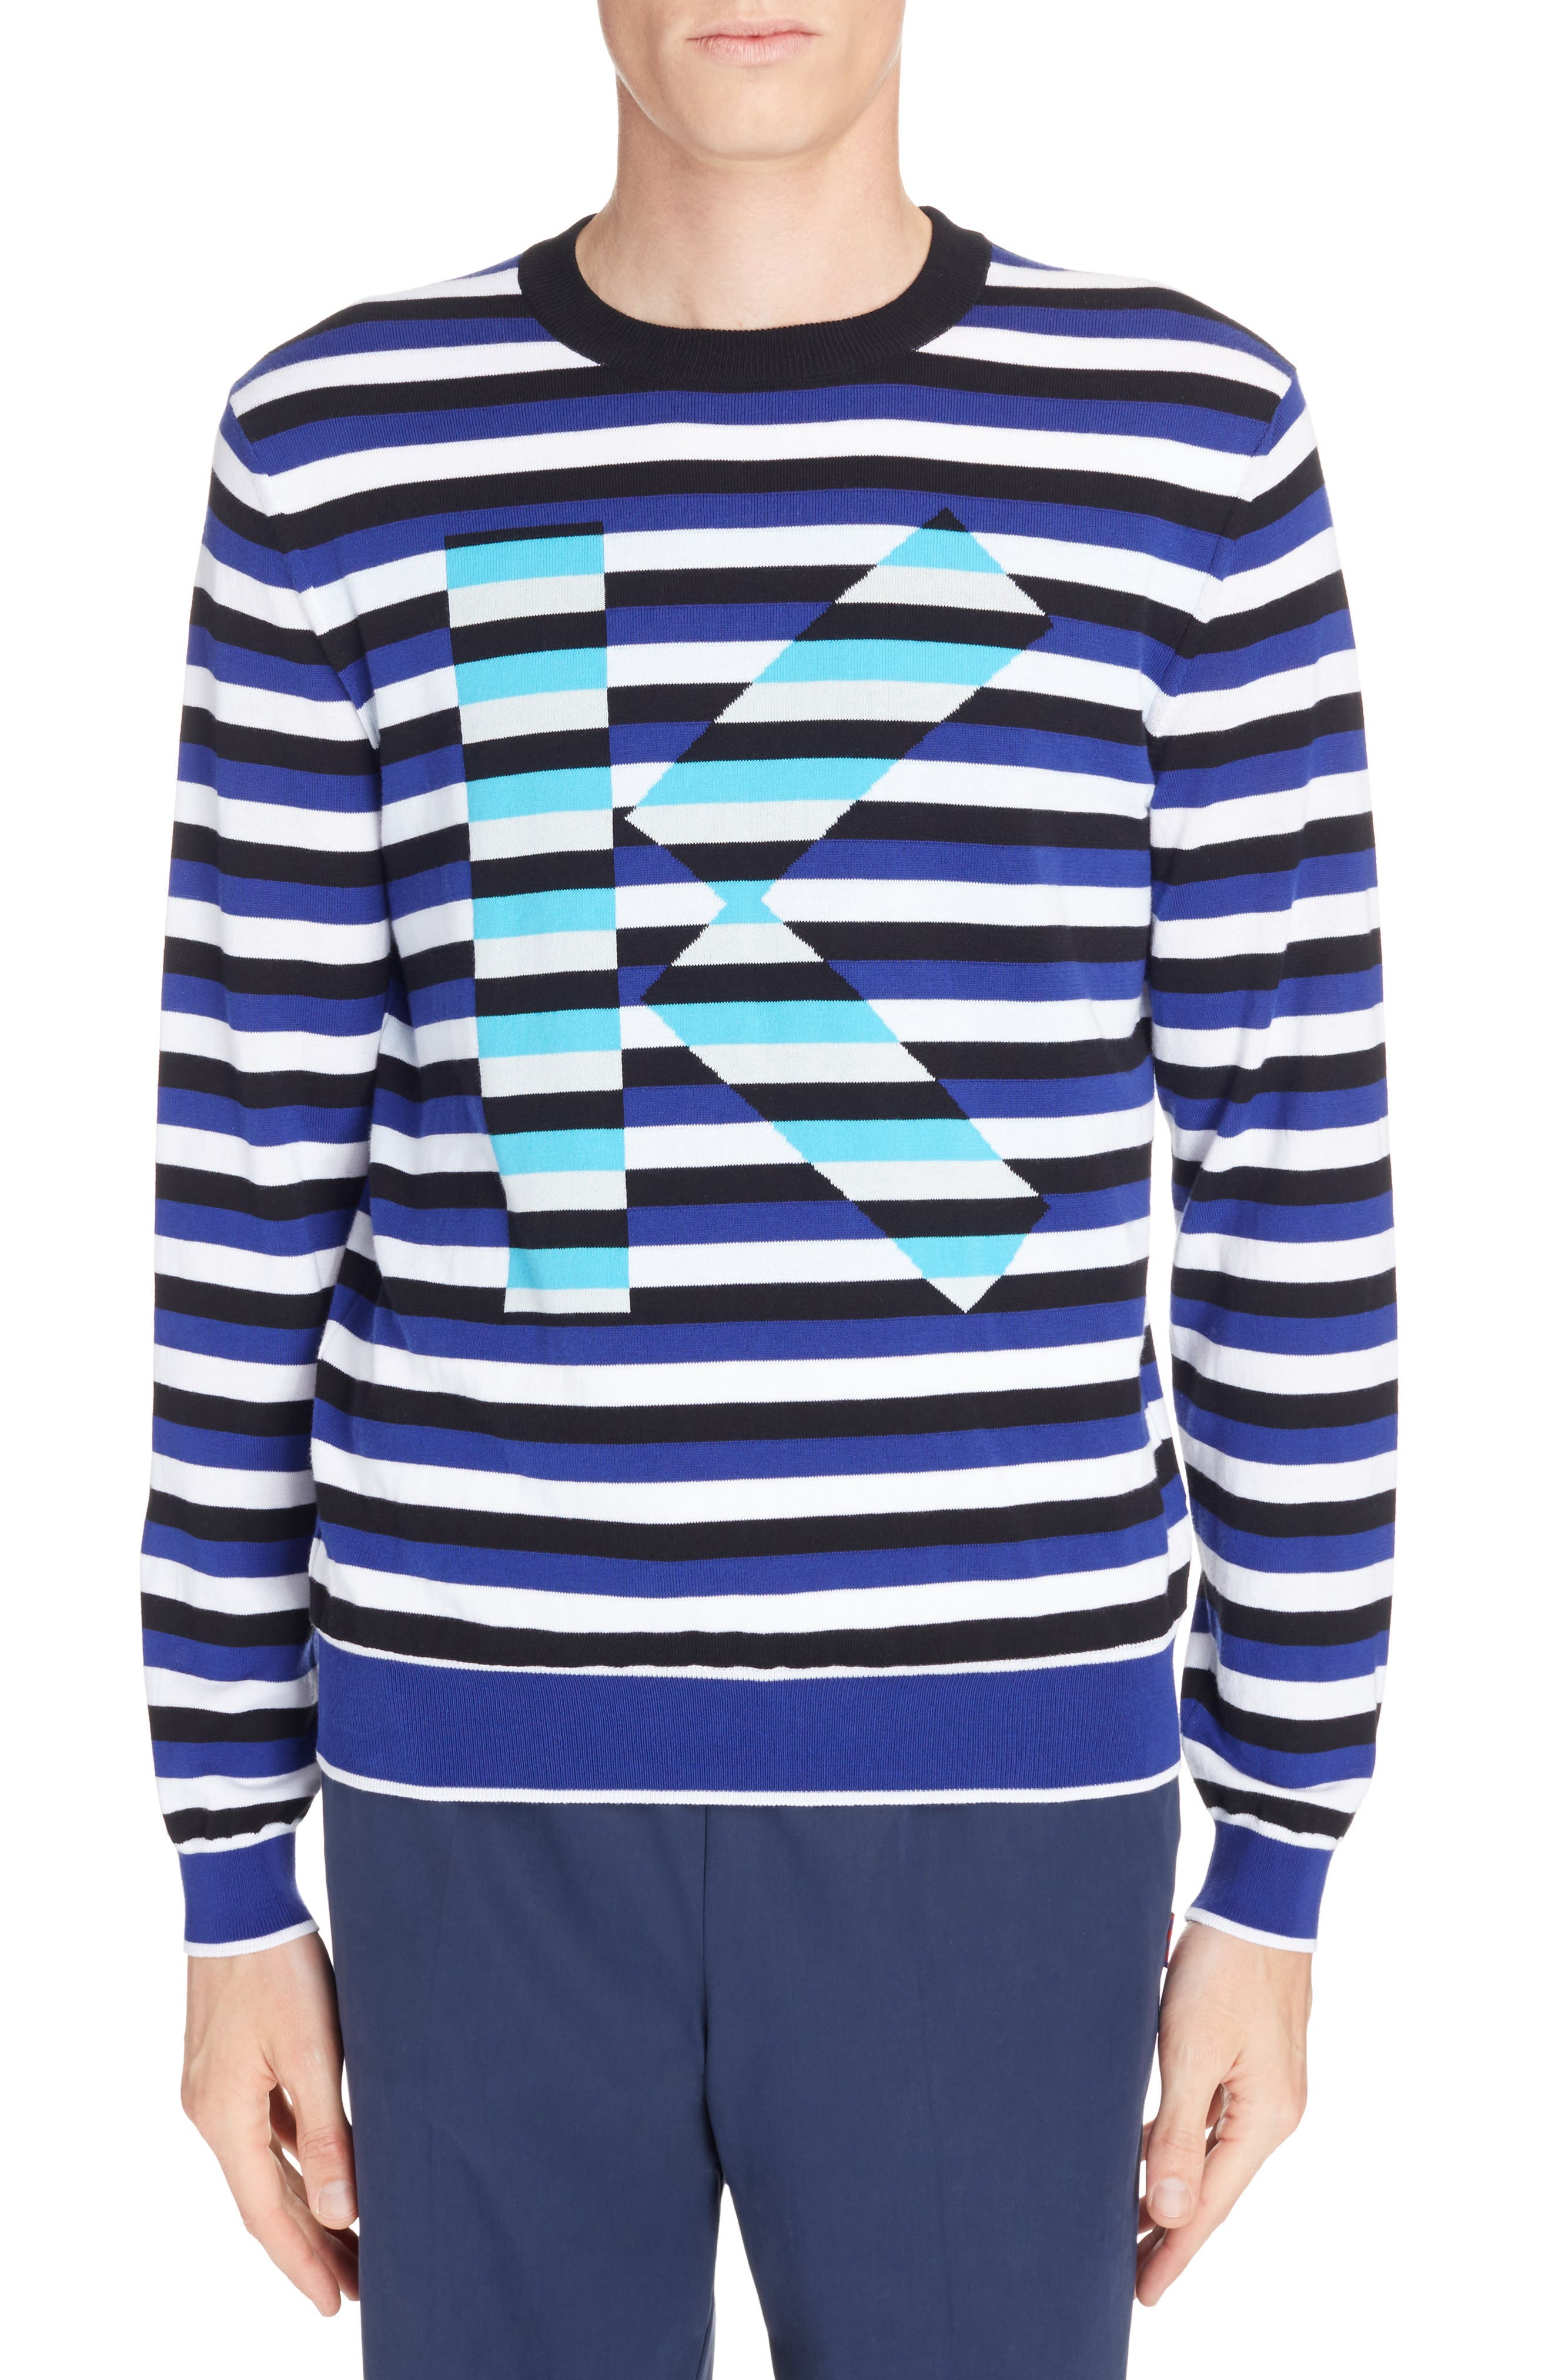 Large K Stripe Sweater,                             Main thumbnail 1, color,                             French Blue